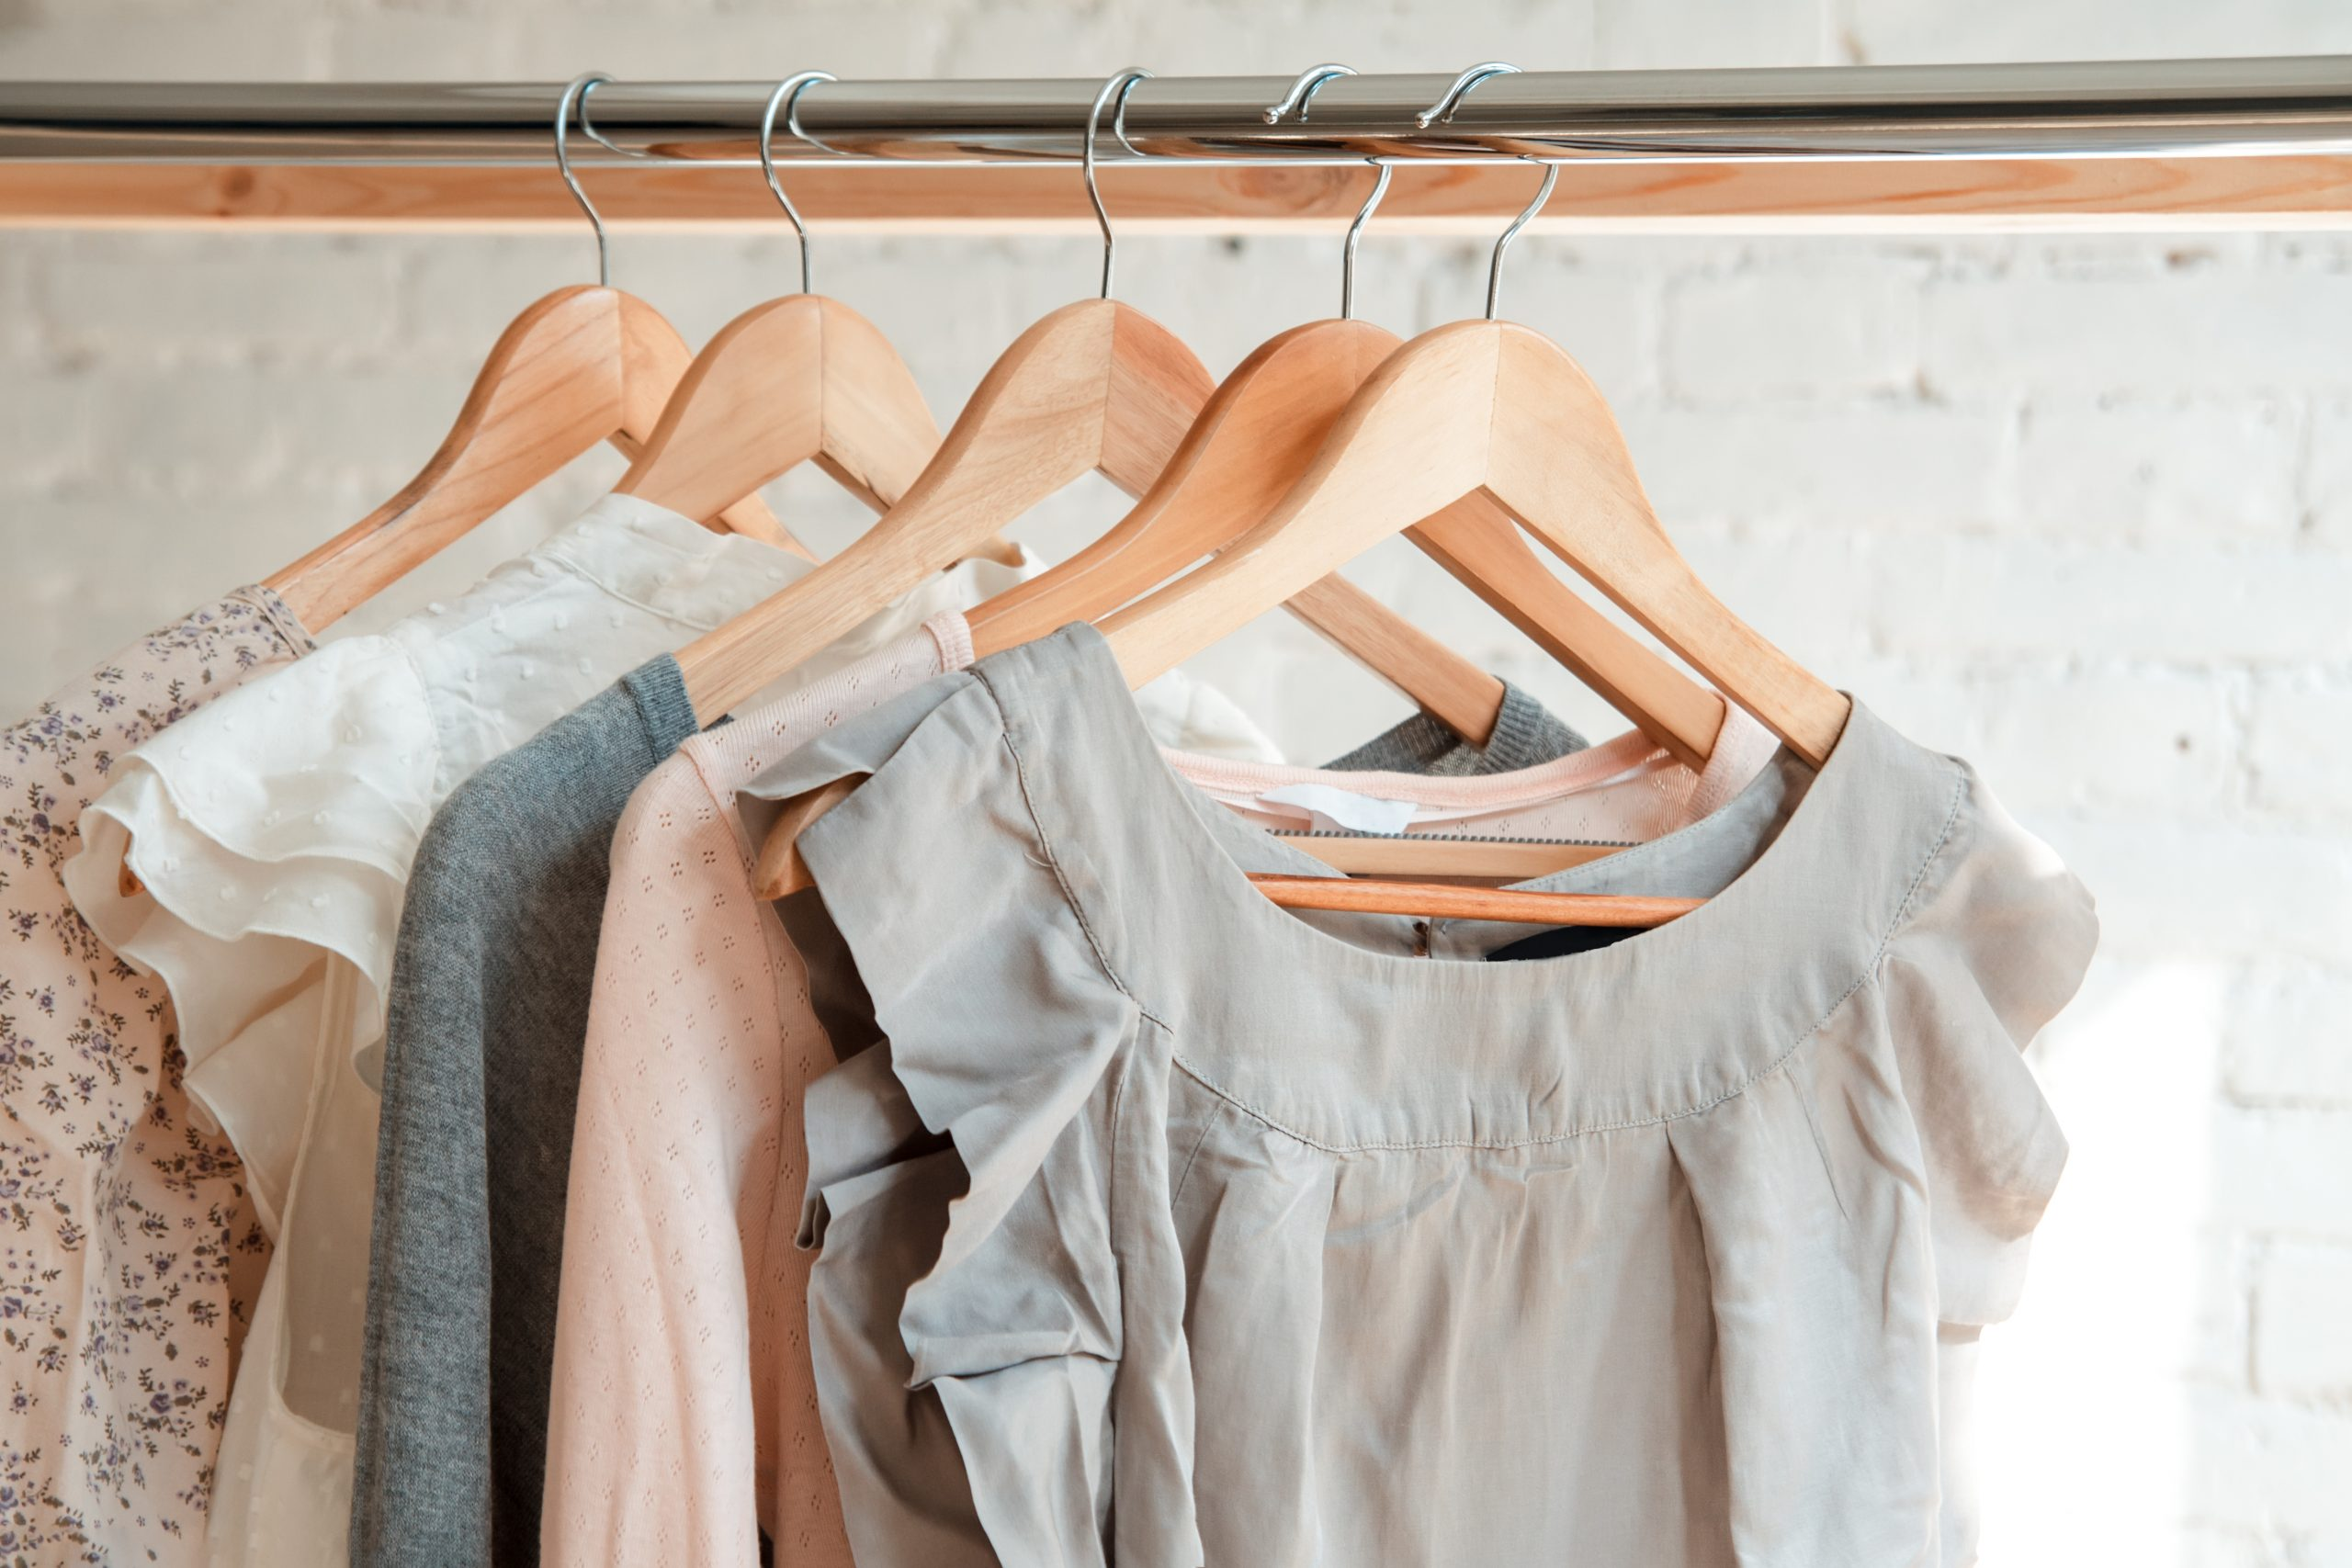 Looking for sustainable fashion? Here are some tips to facilitate the search